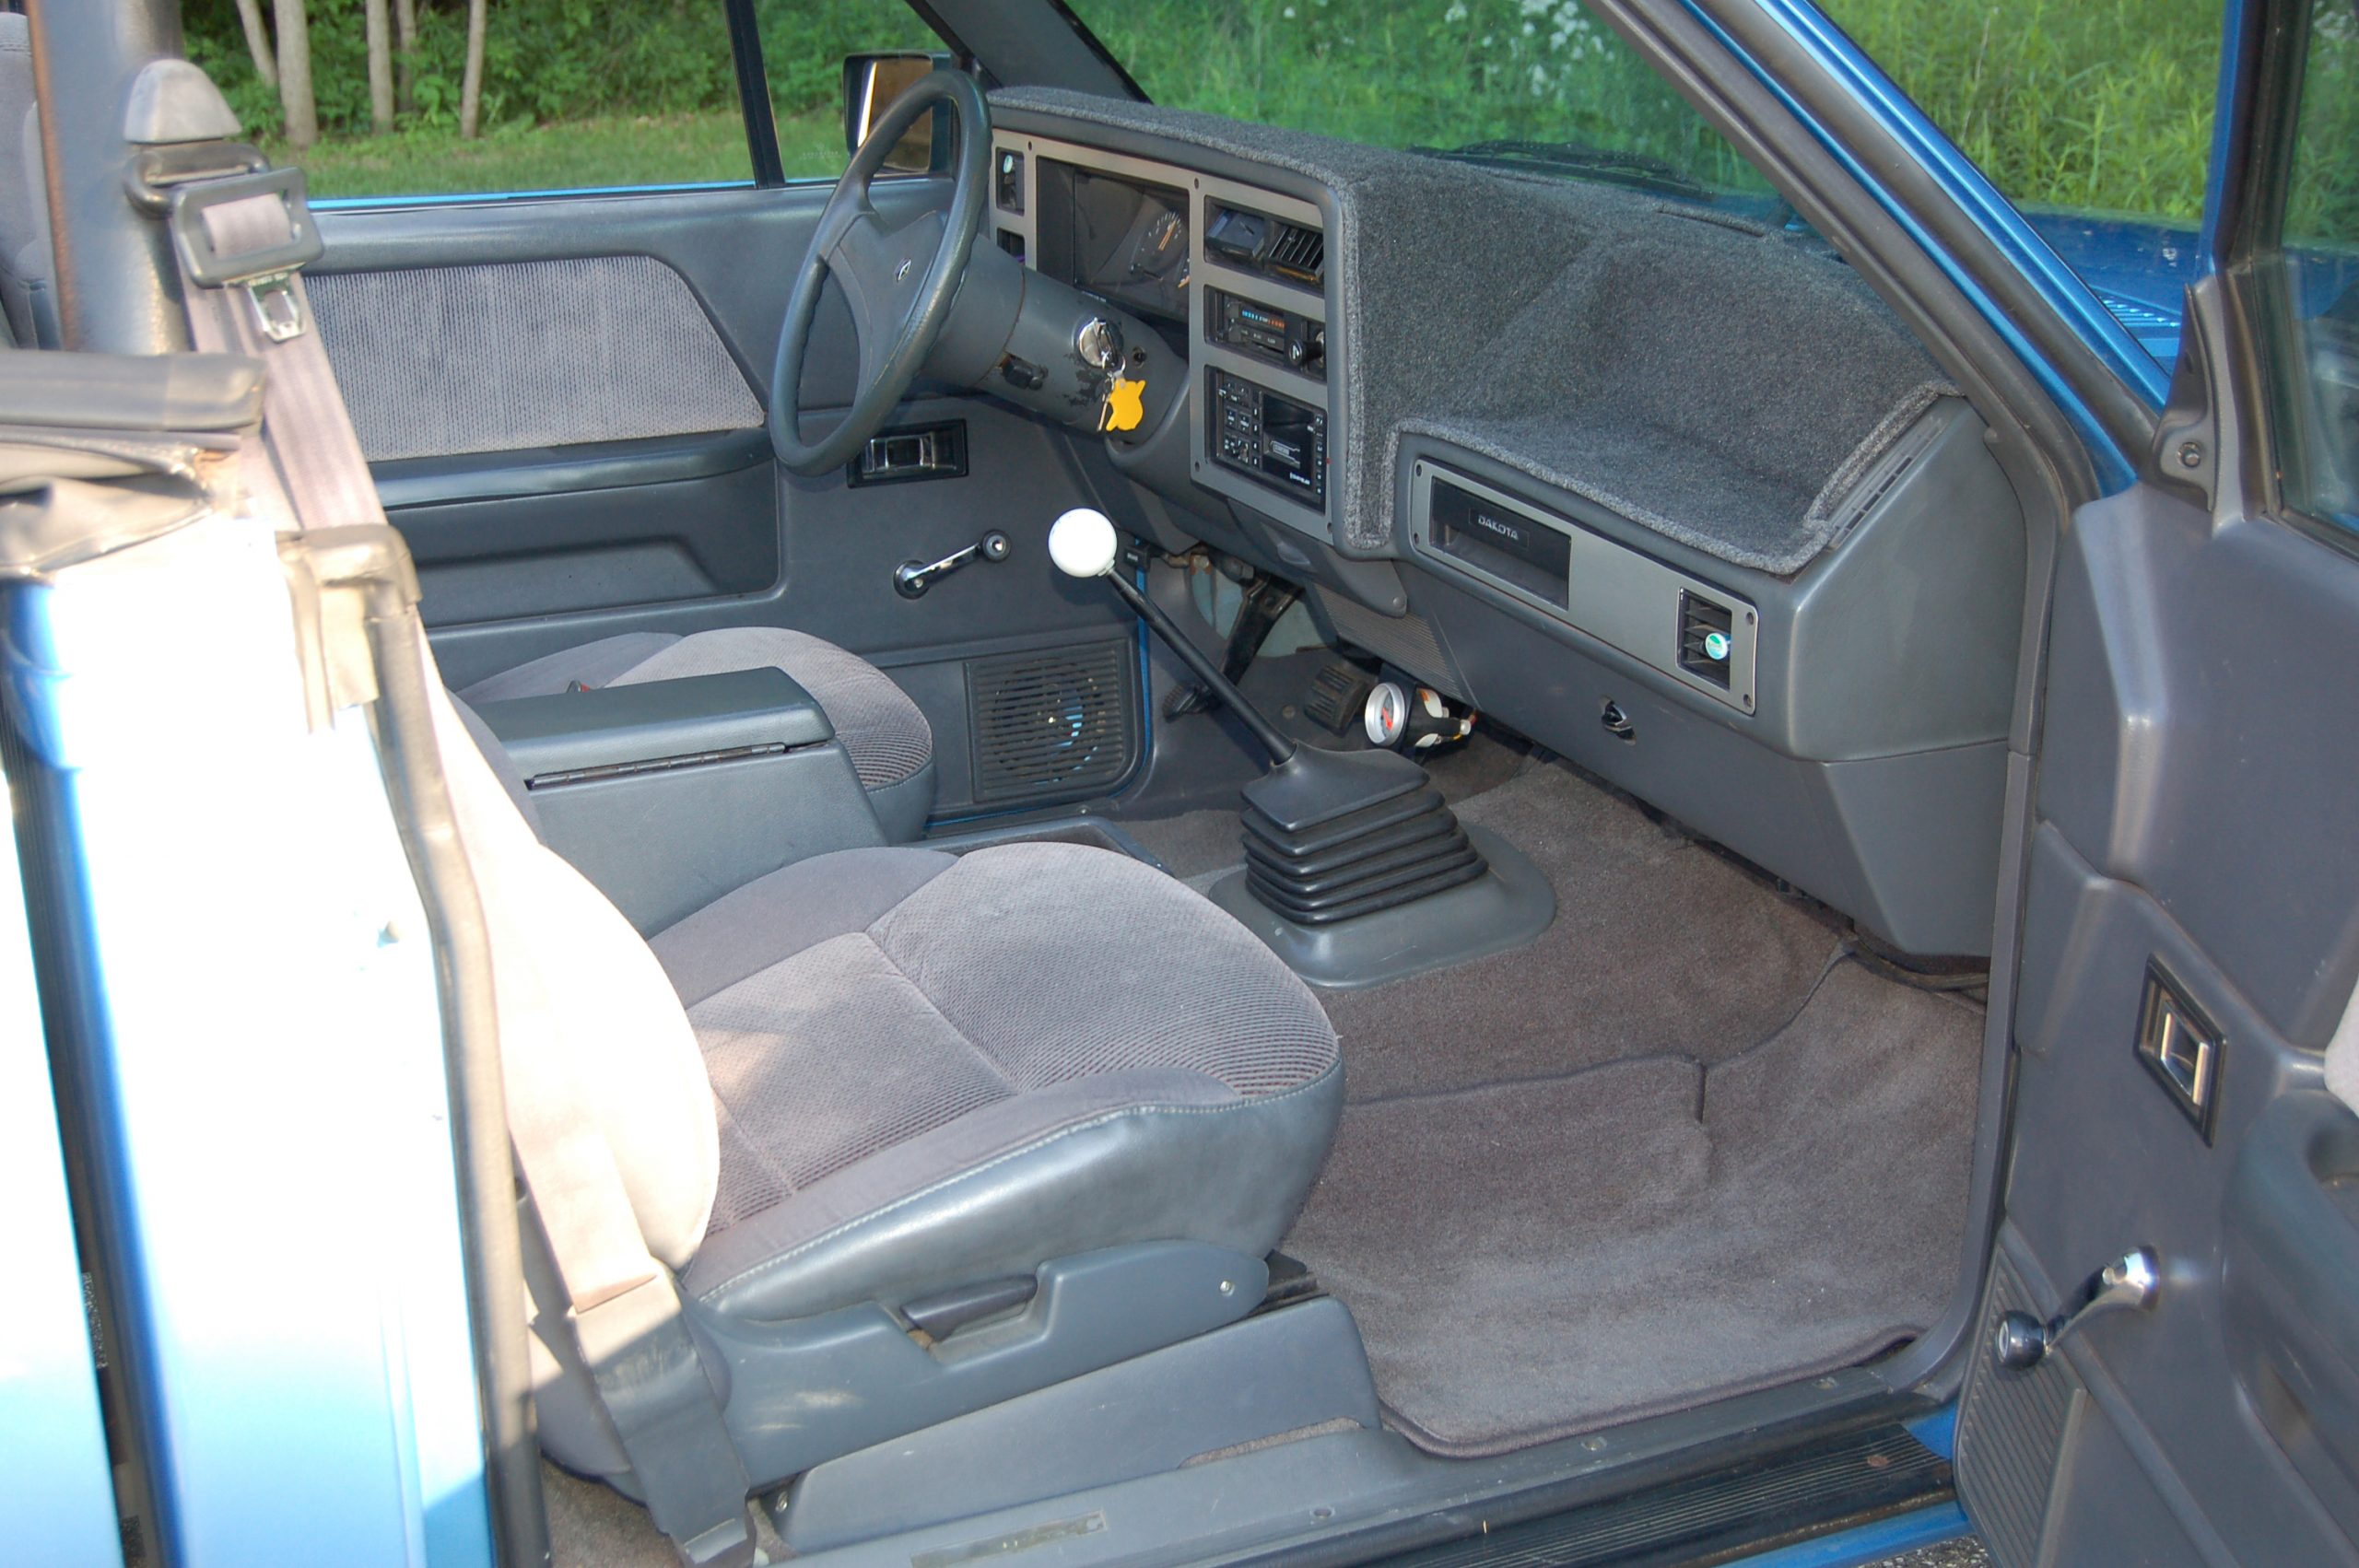 1990 Dodge Dakota Sport Convertible interior